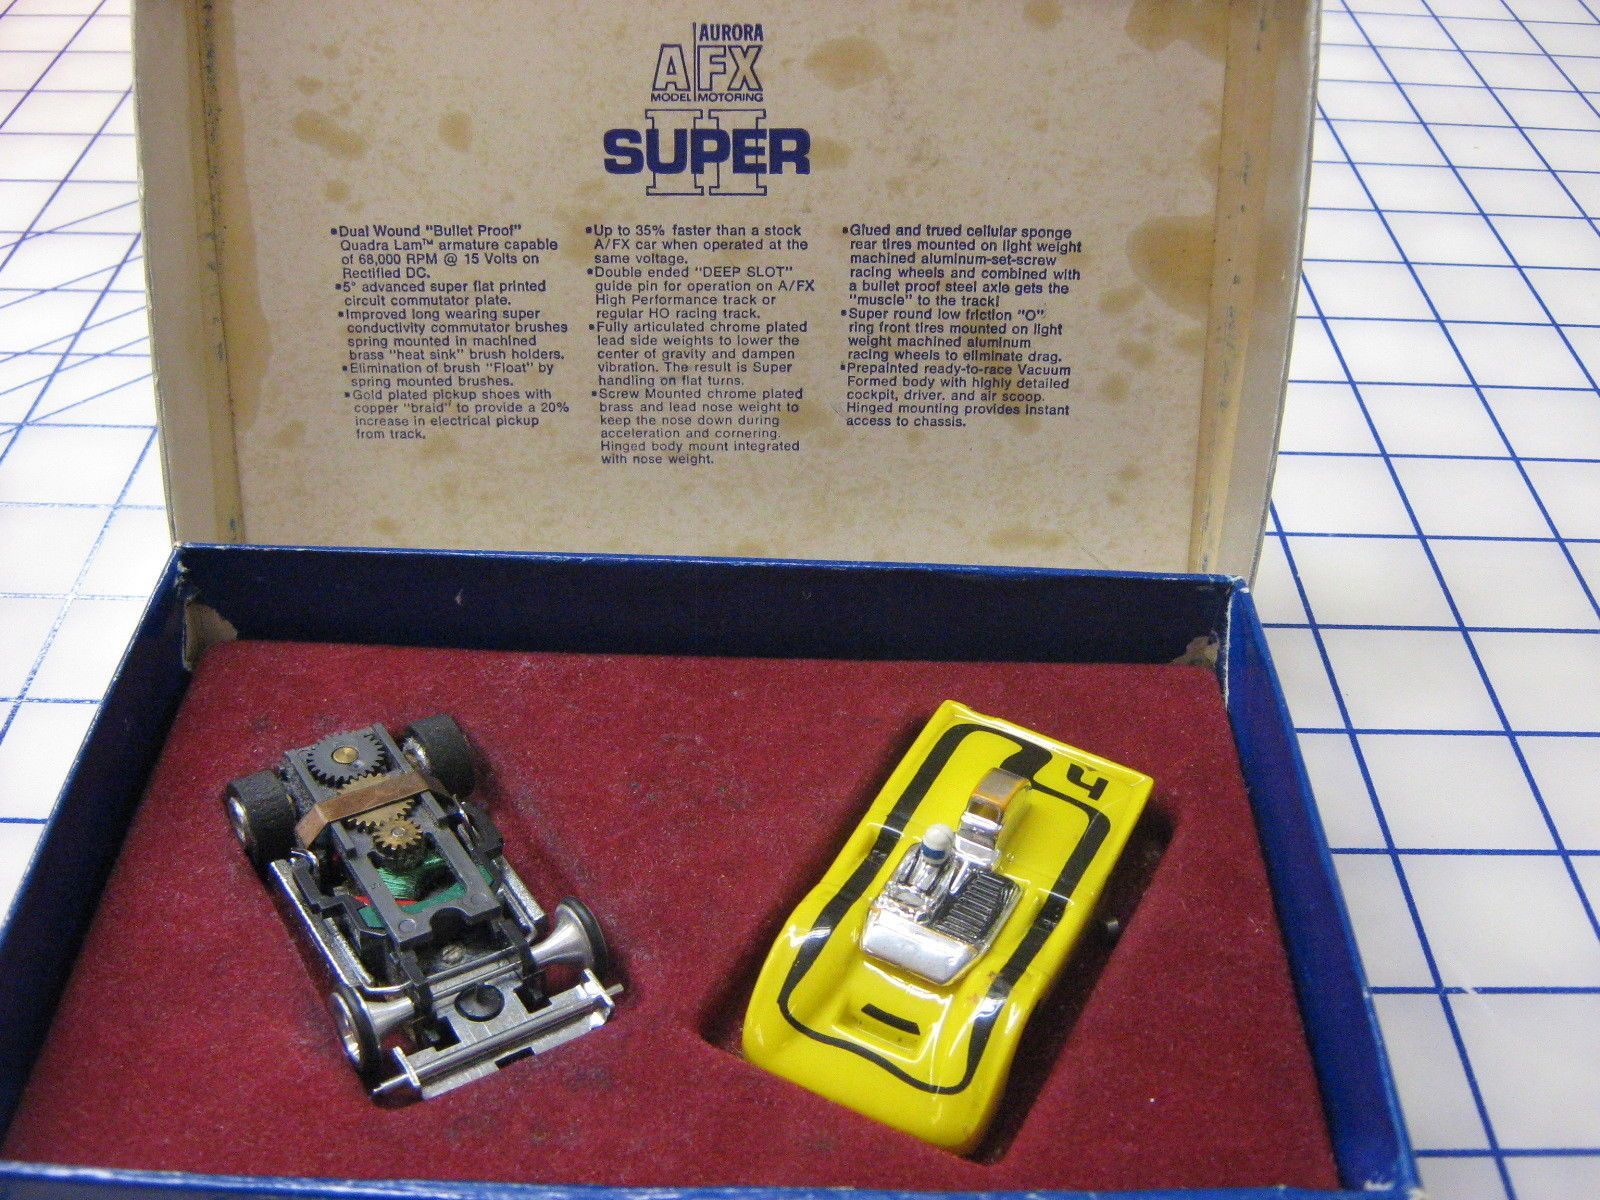 Afx Super Ii Slot Car Slot Cars Slot Car Racing Ho Slot Cars